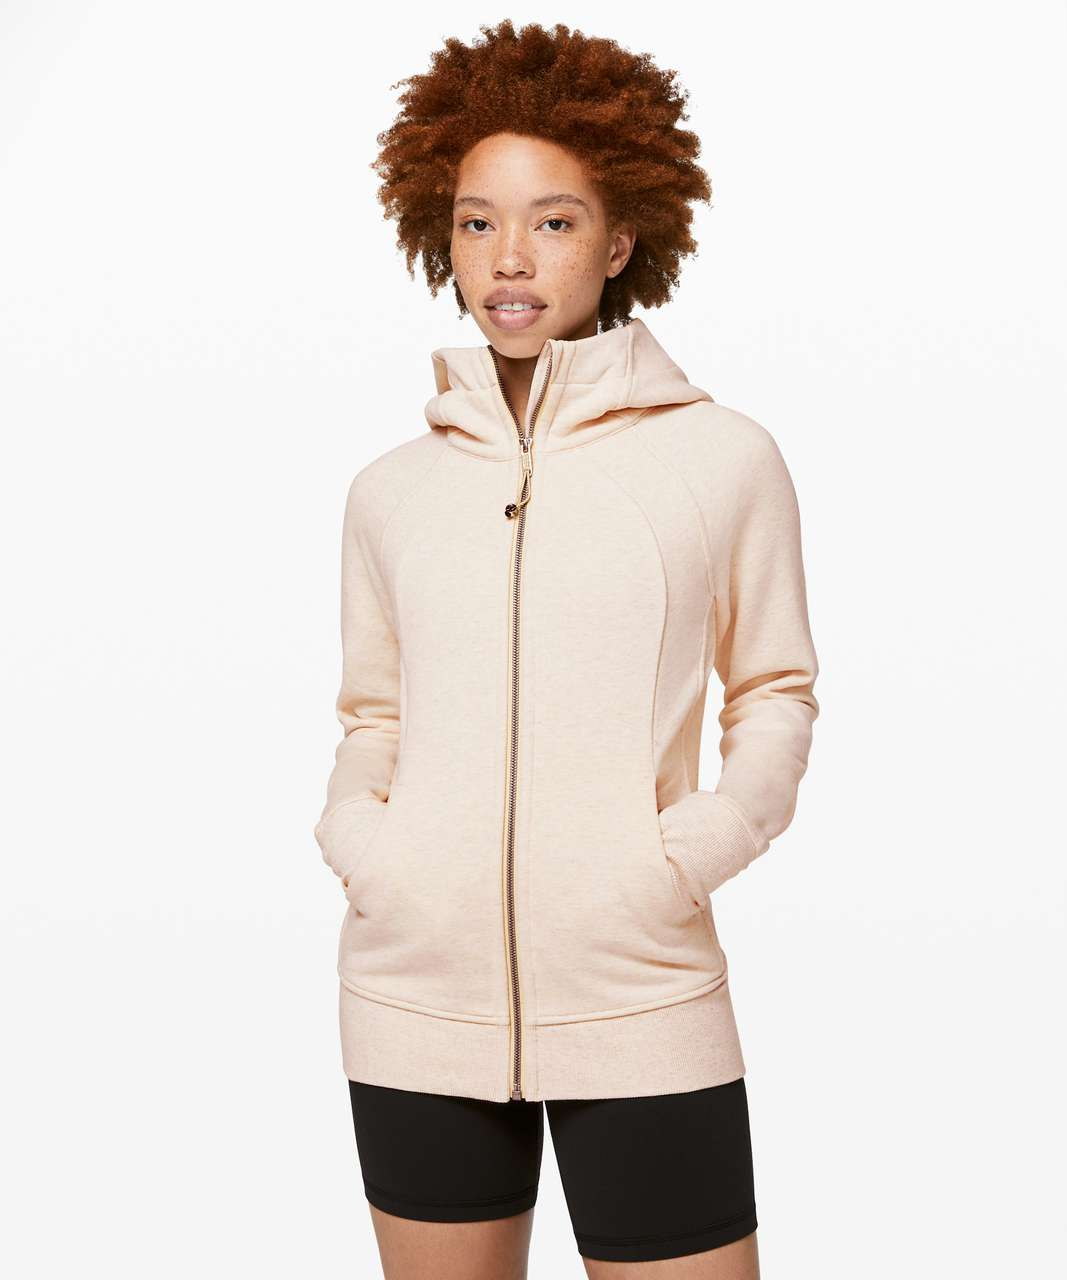 Lululemon Scuba Hoodie *Light Cotton Fleece - Heathered Sun Shower